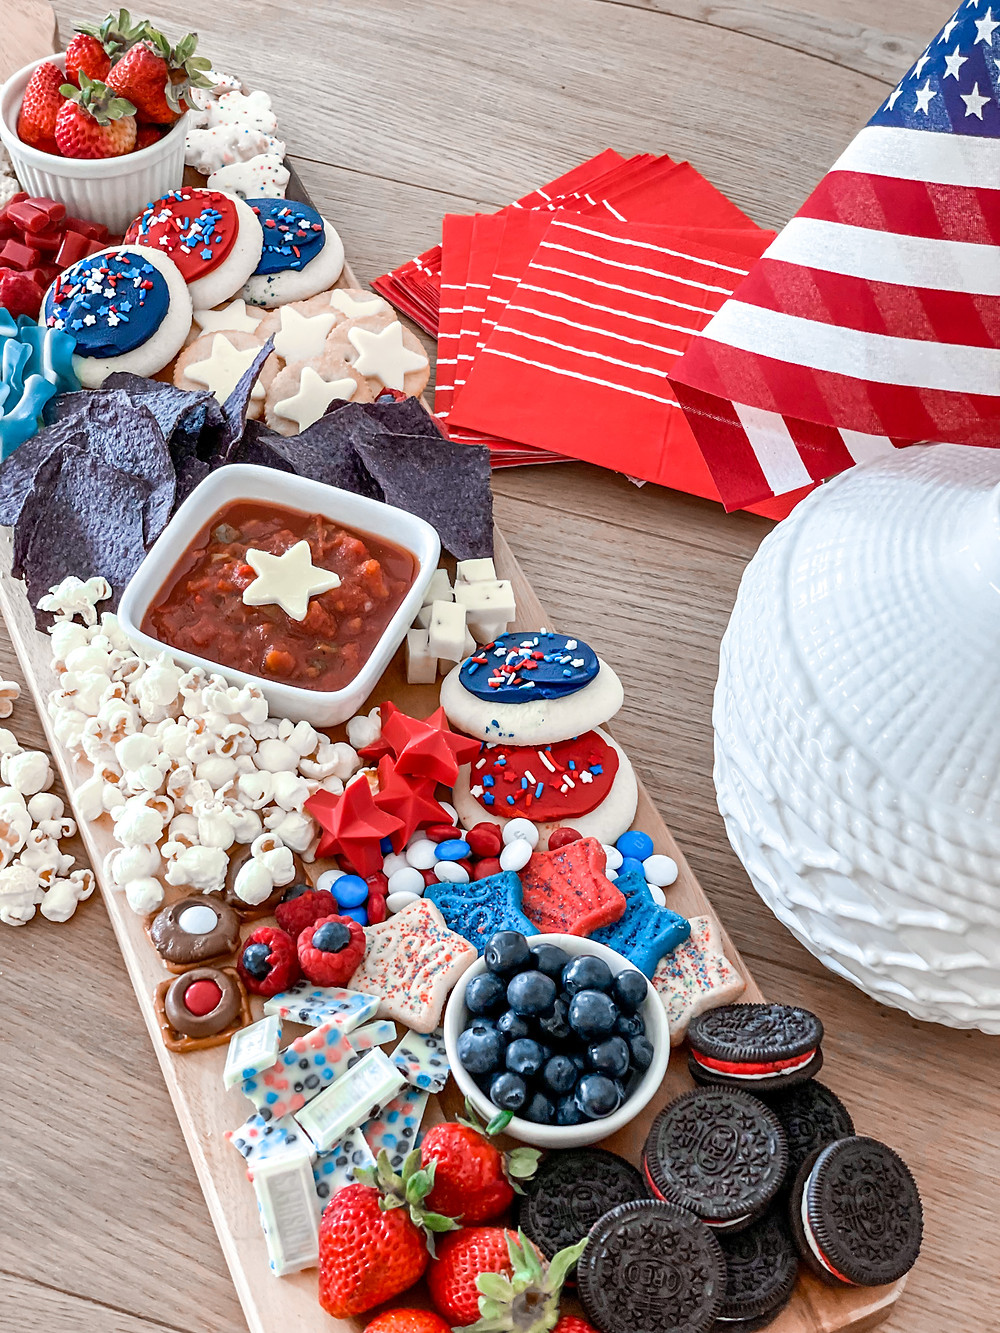 4th of July charcuterie board. Patriotic snack board. snack board. summer charcuterie better homes and gardens. 4th of July food.